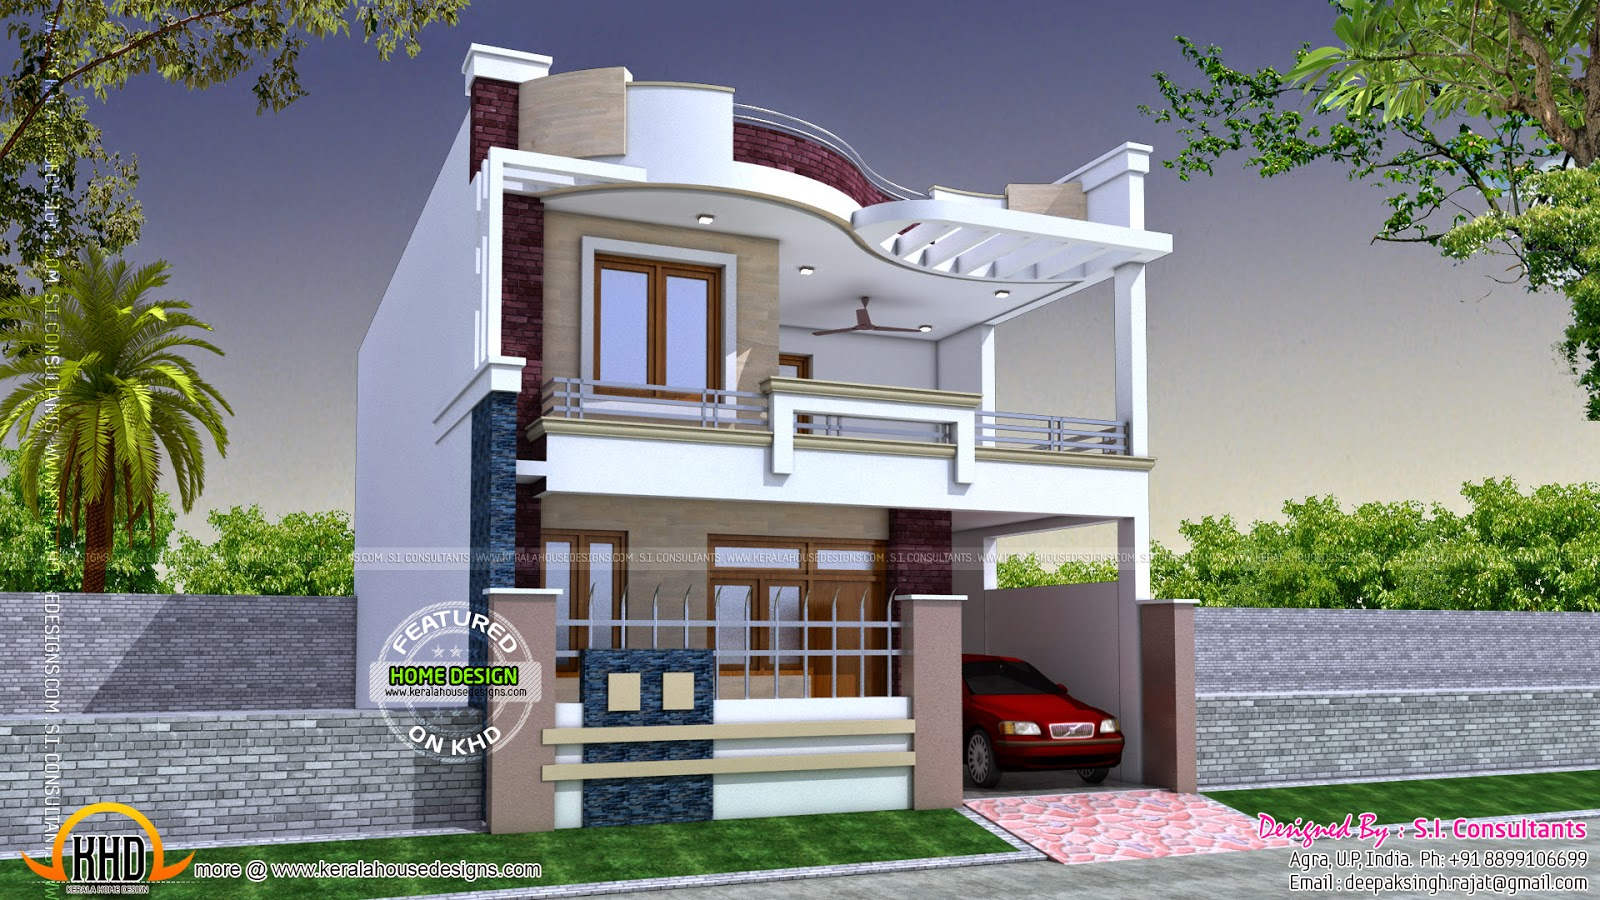 Small house architecture design in india minimalist home for Architecture design for home in india